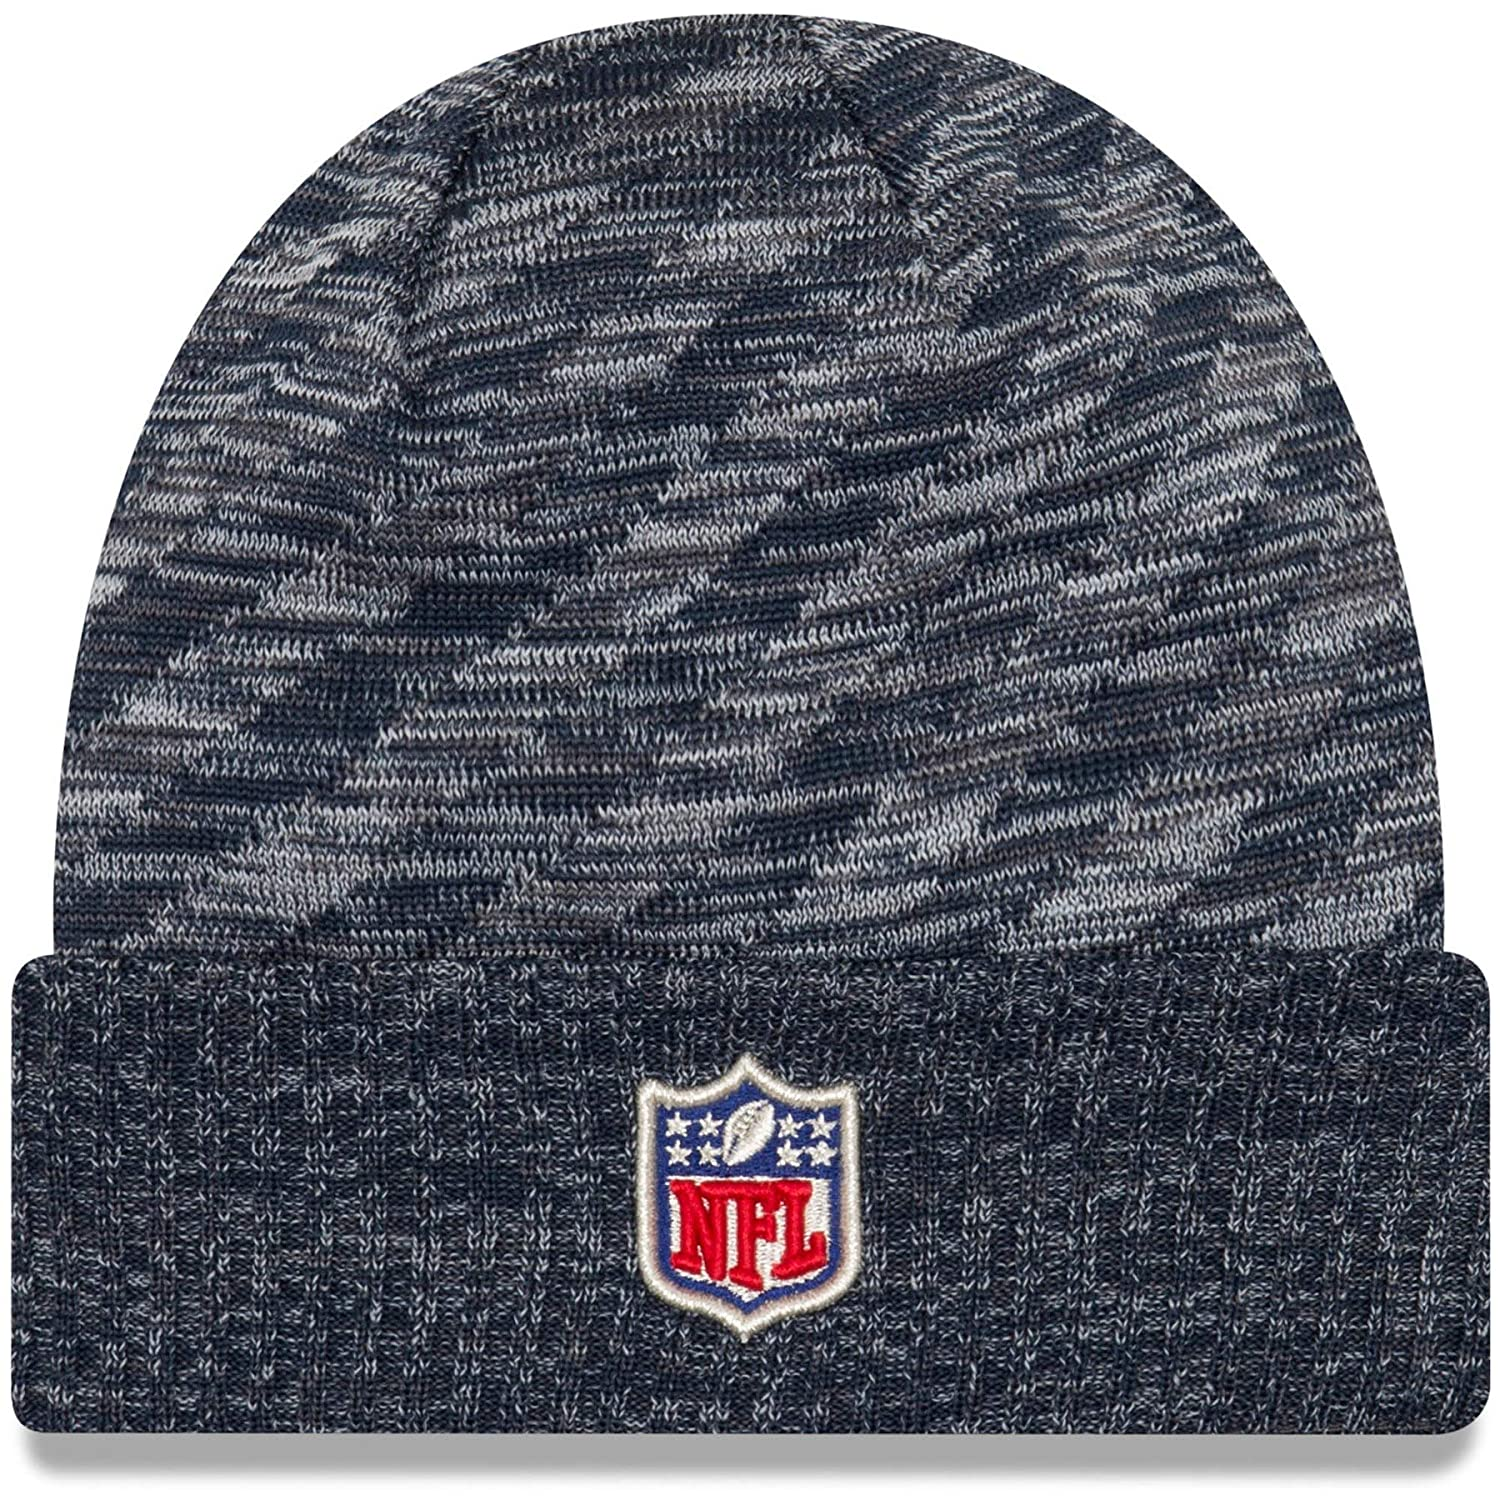 Amazon.com  New Era New England Patriots Knit On Field 18 TD Winter Hat  Navy Grey Size One Size  Clothing 890102d32